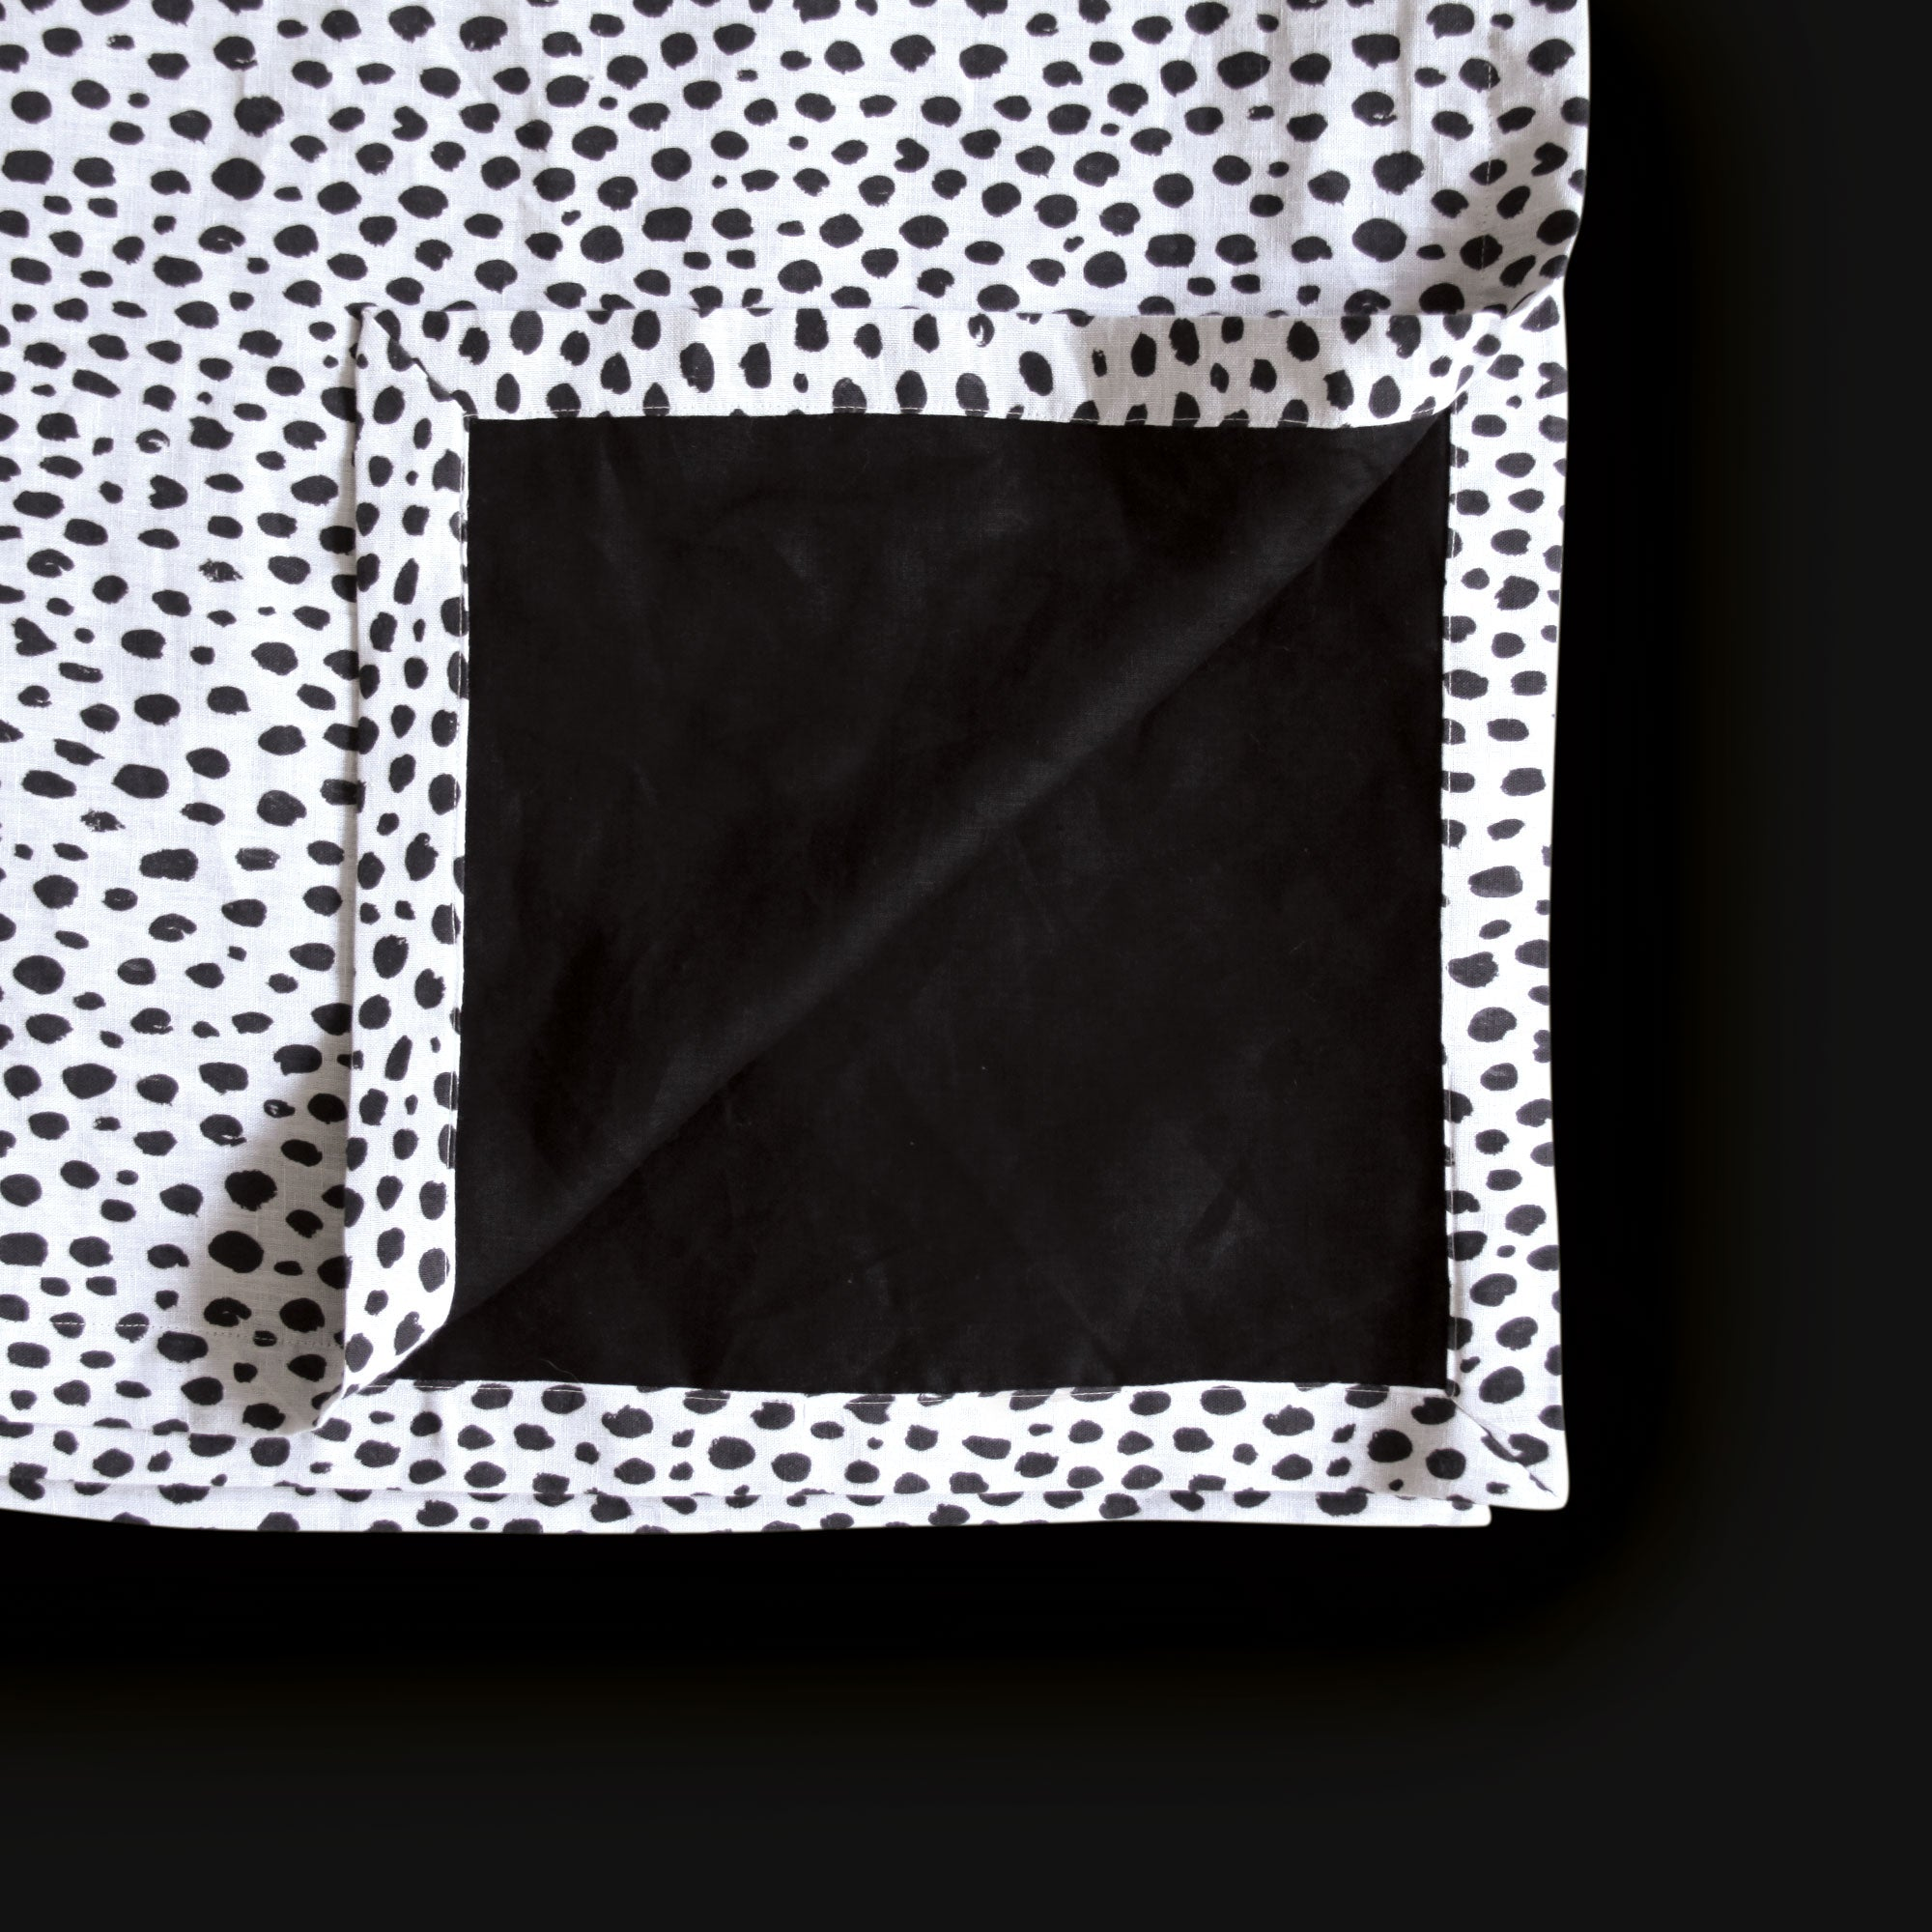 Black and white linen throw blanket showing animal print on one side and plain black linen on the other